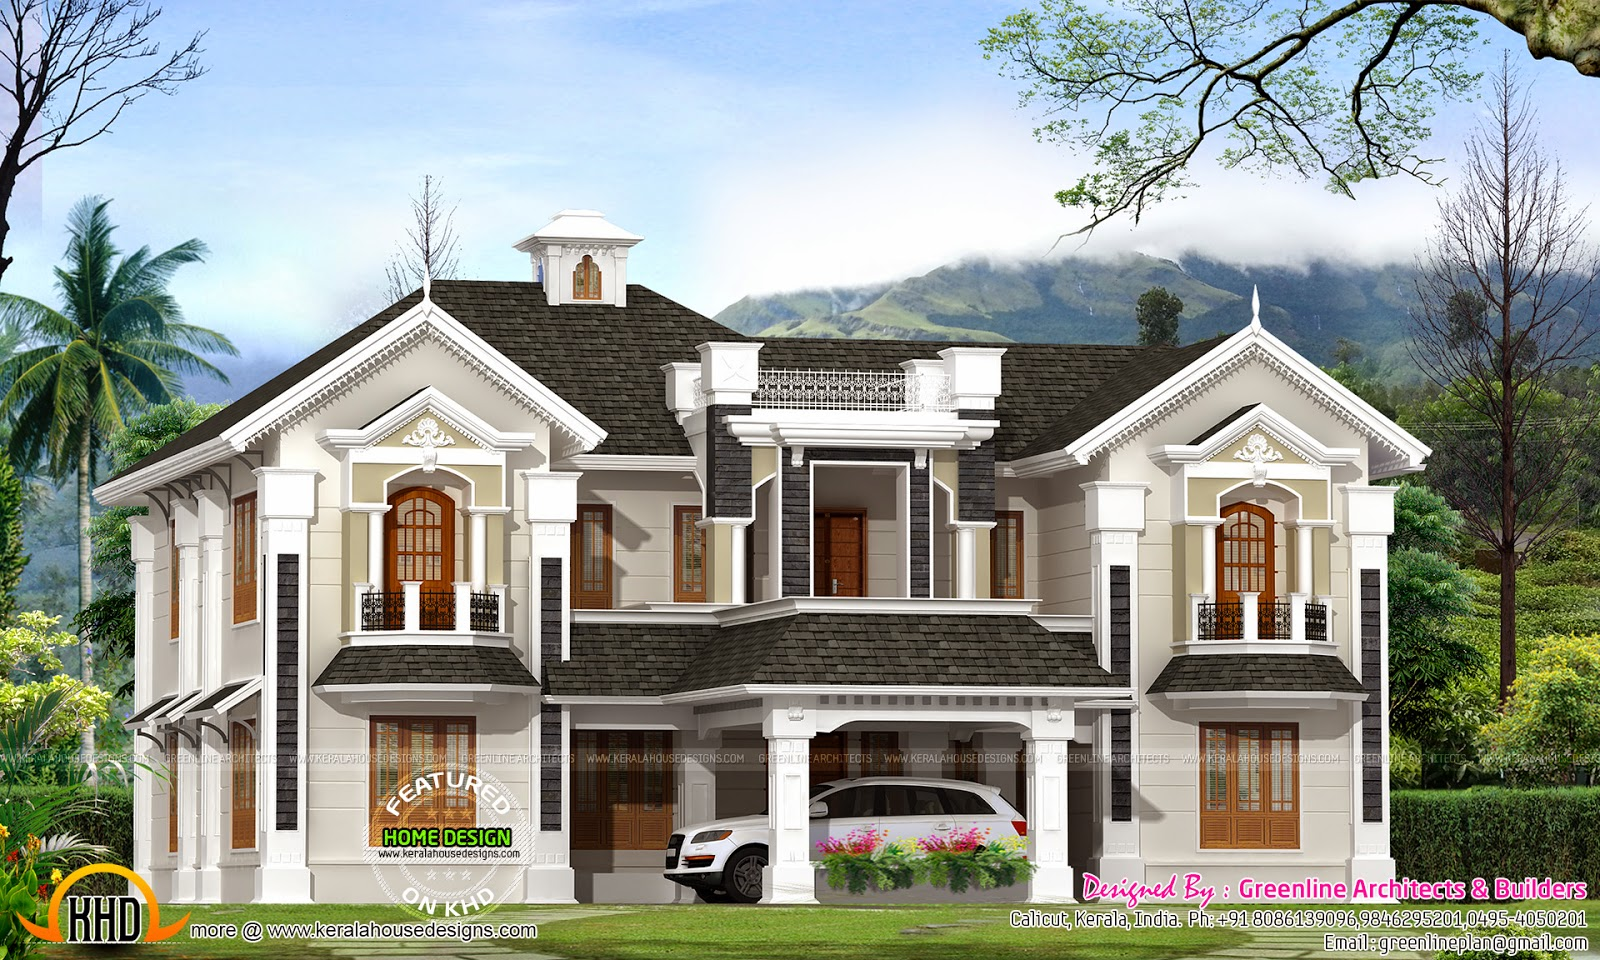 Colonial style house in kerala kerala home design and for Kerala style house plans with photos